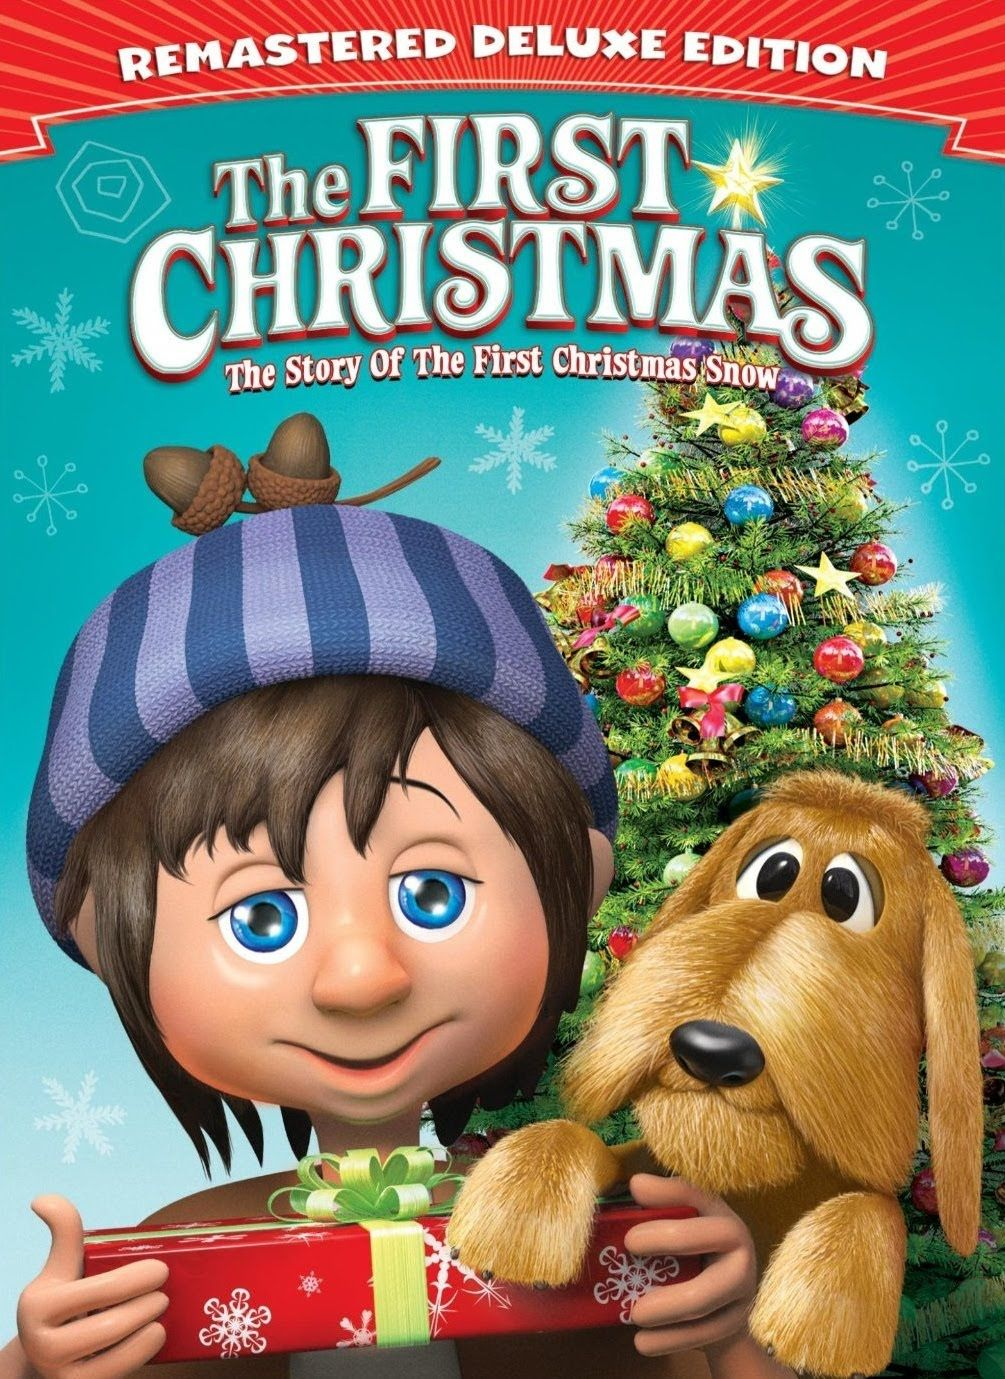 My all time favorite Christmas movie. The First Christmas:The Story of the First Christmas Snow (1975 Full Show)